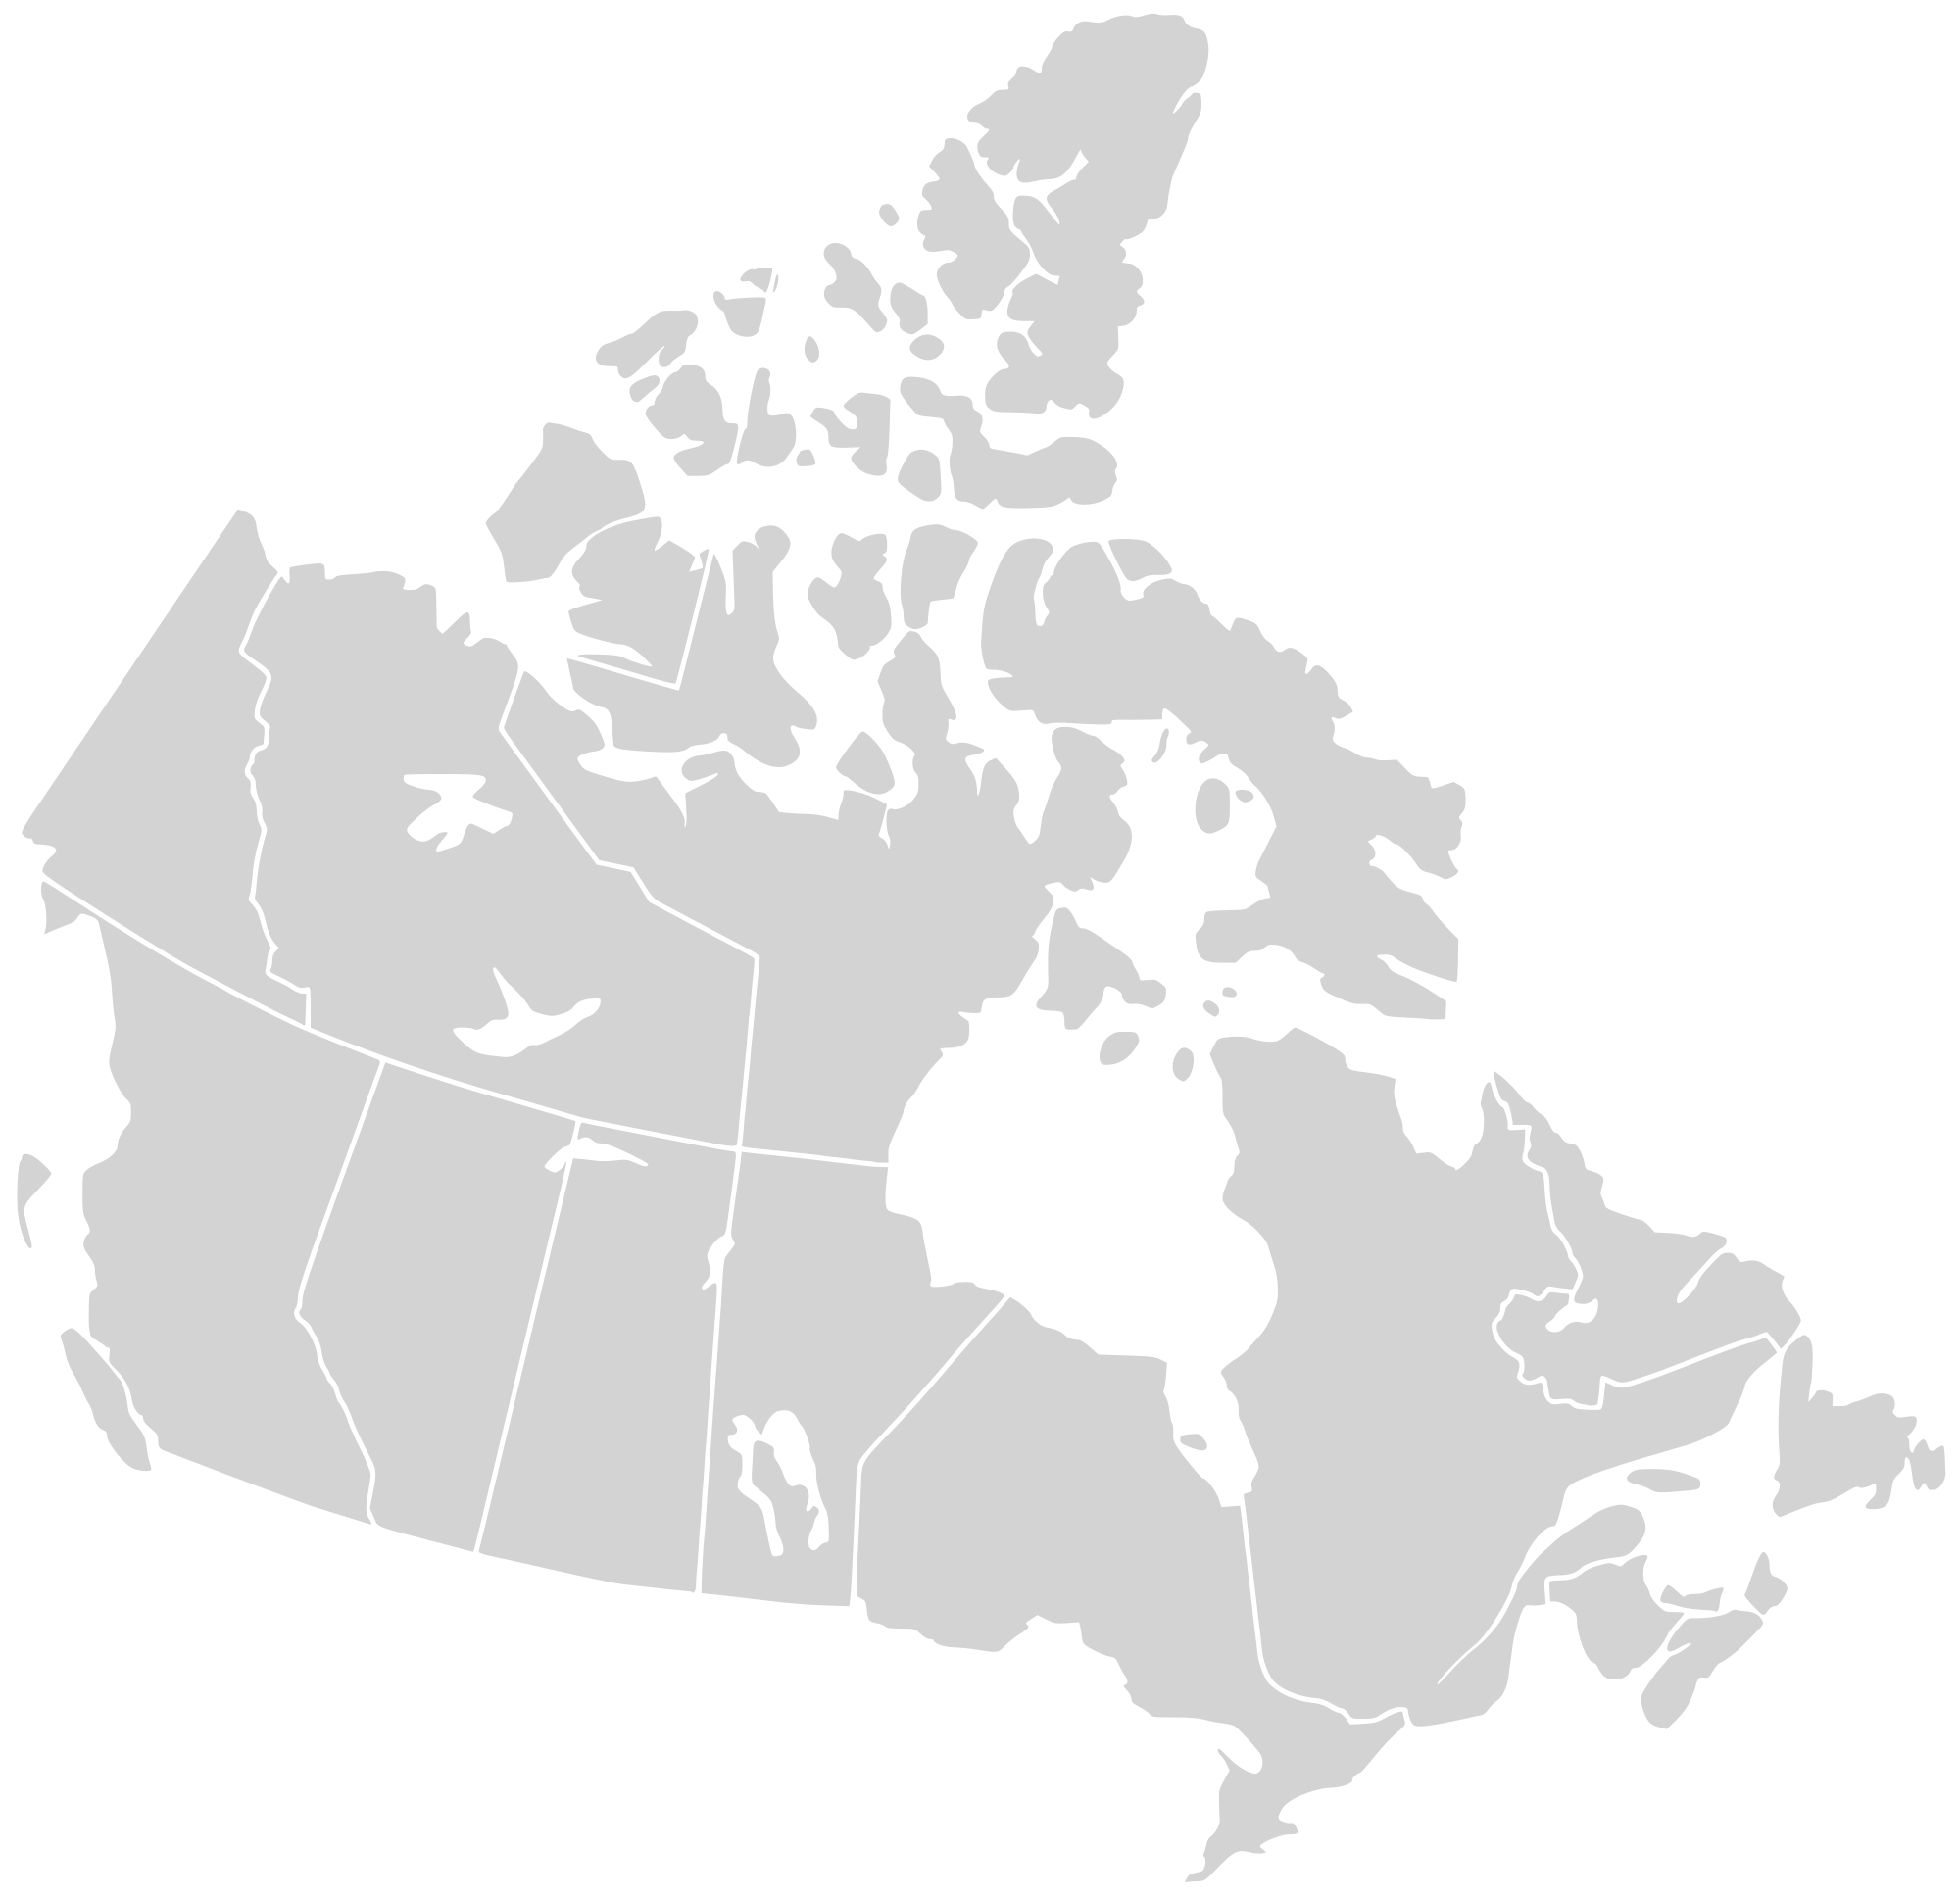 Clipart map generic. File canada blank svg